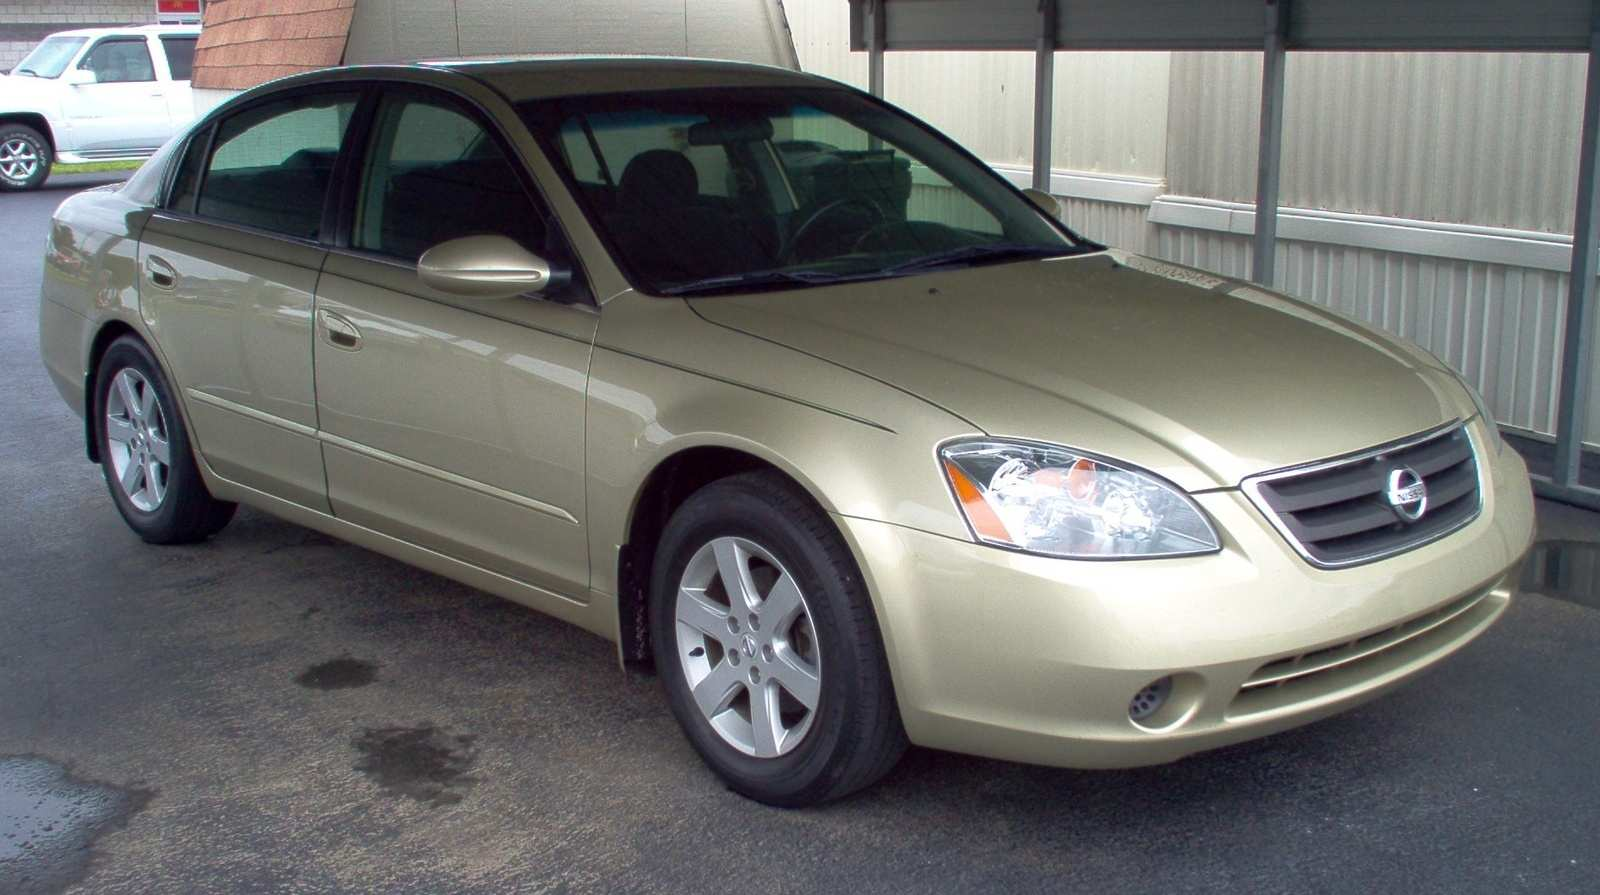 68 Gallery of 2003 Nissan Altima 2 5 Pricing by 2003 Nissan Altima 2 5